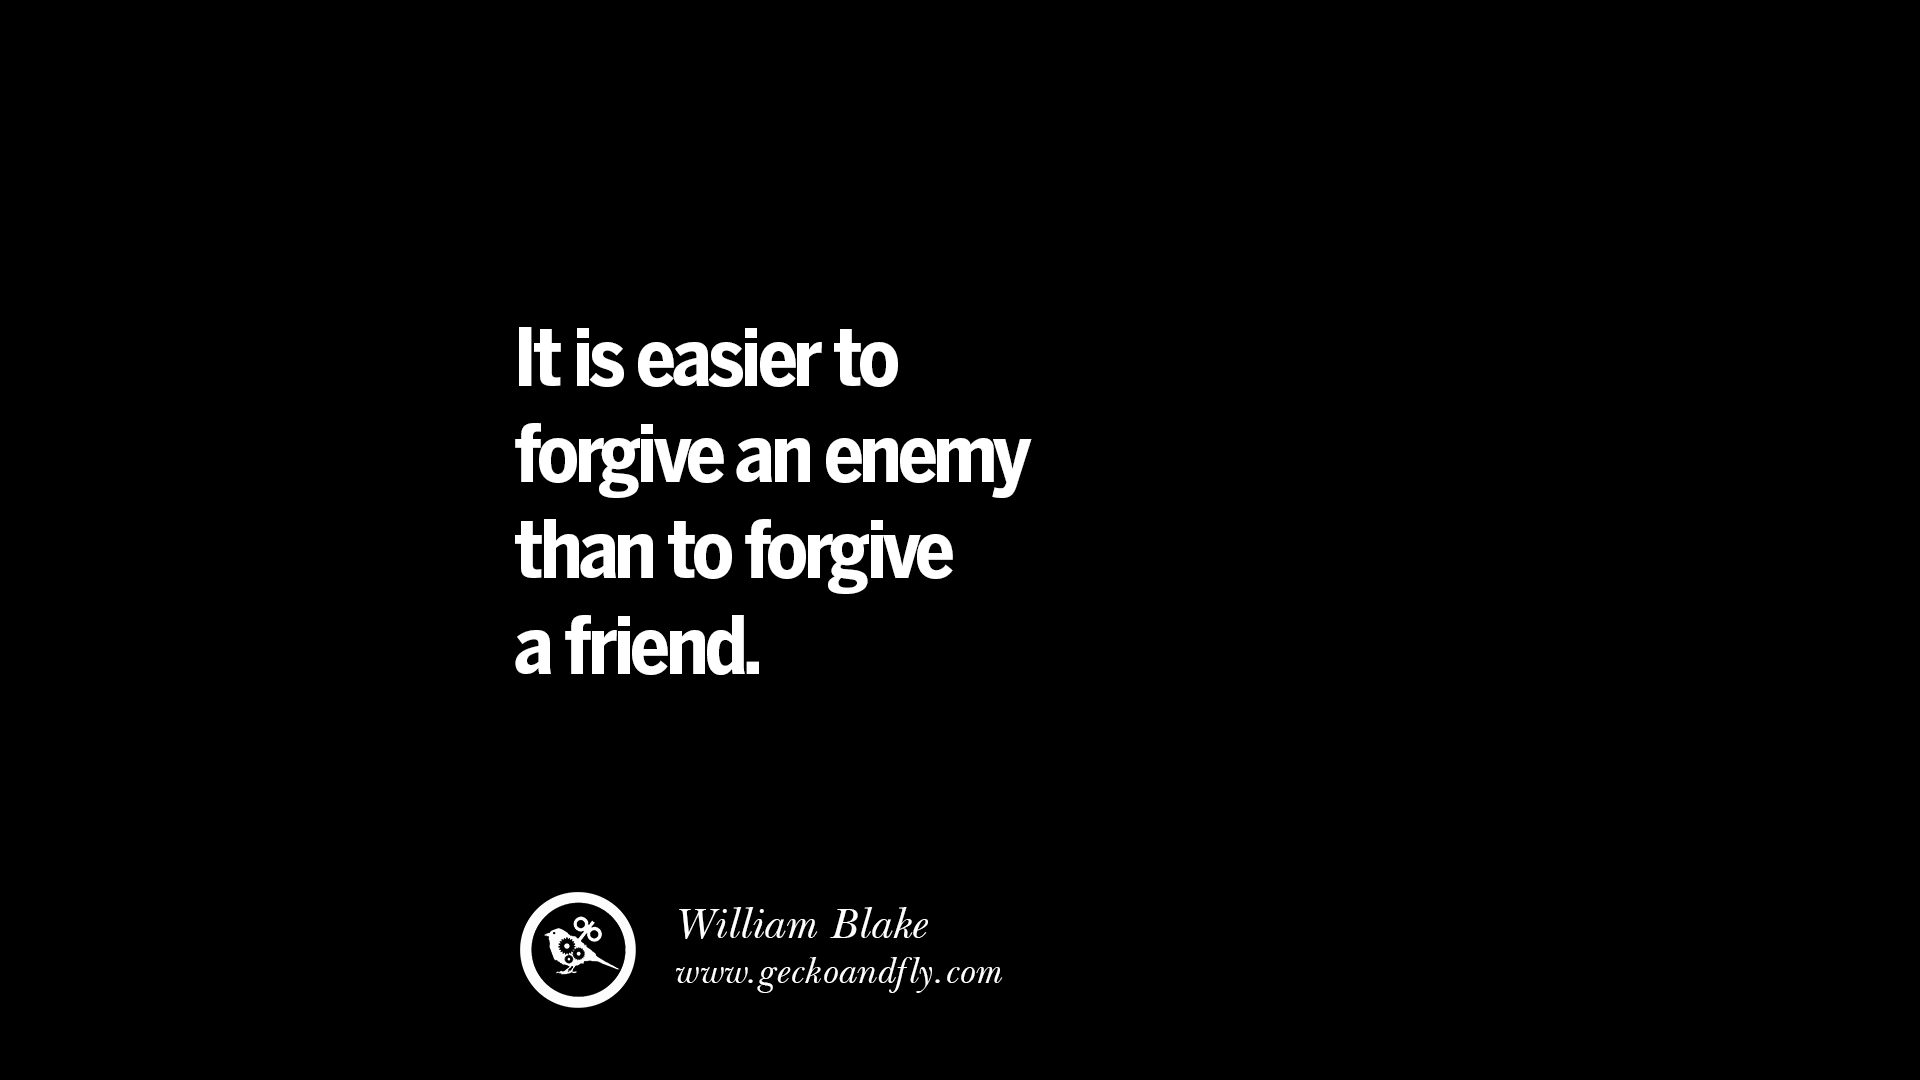 Touching Quotes About Friendship Endearing 25 Quotes On Friendship Trust Love And Betrayal  Geckoandfly 2018